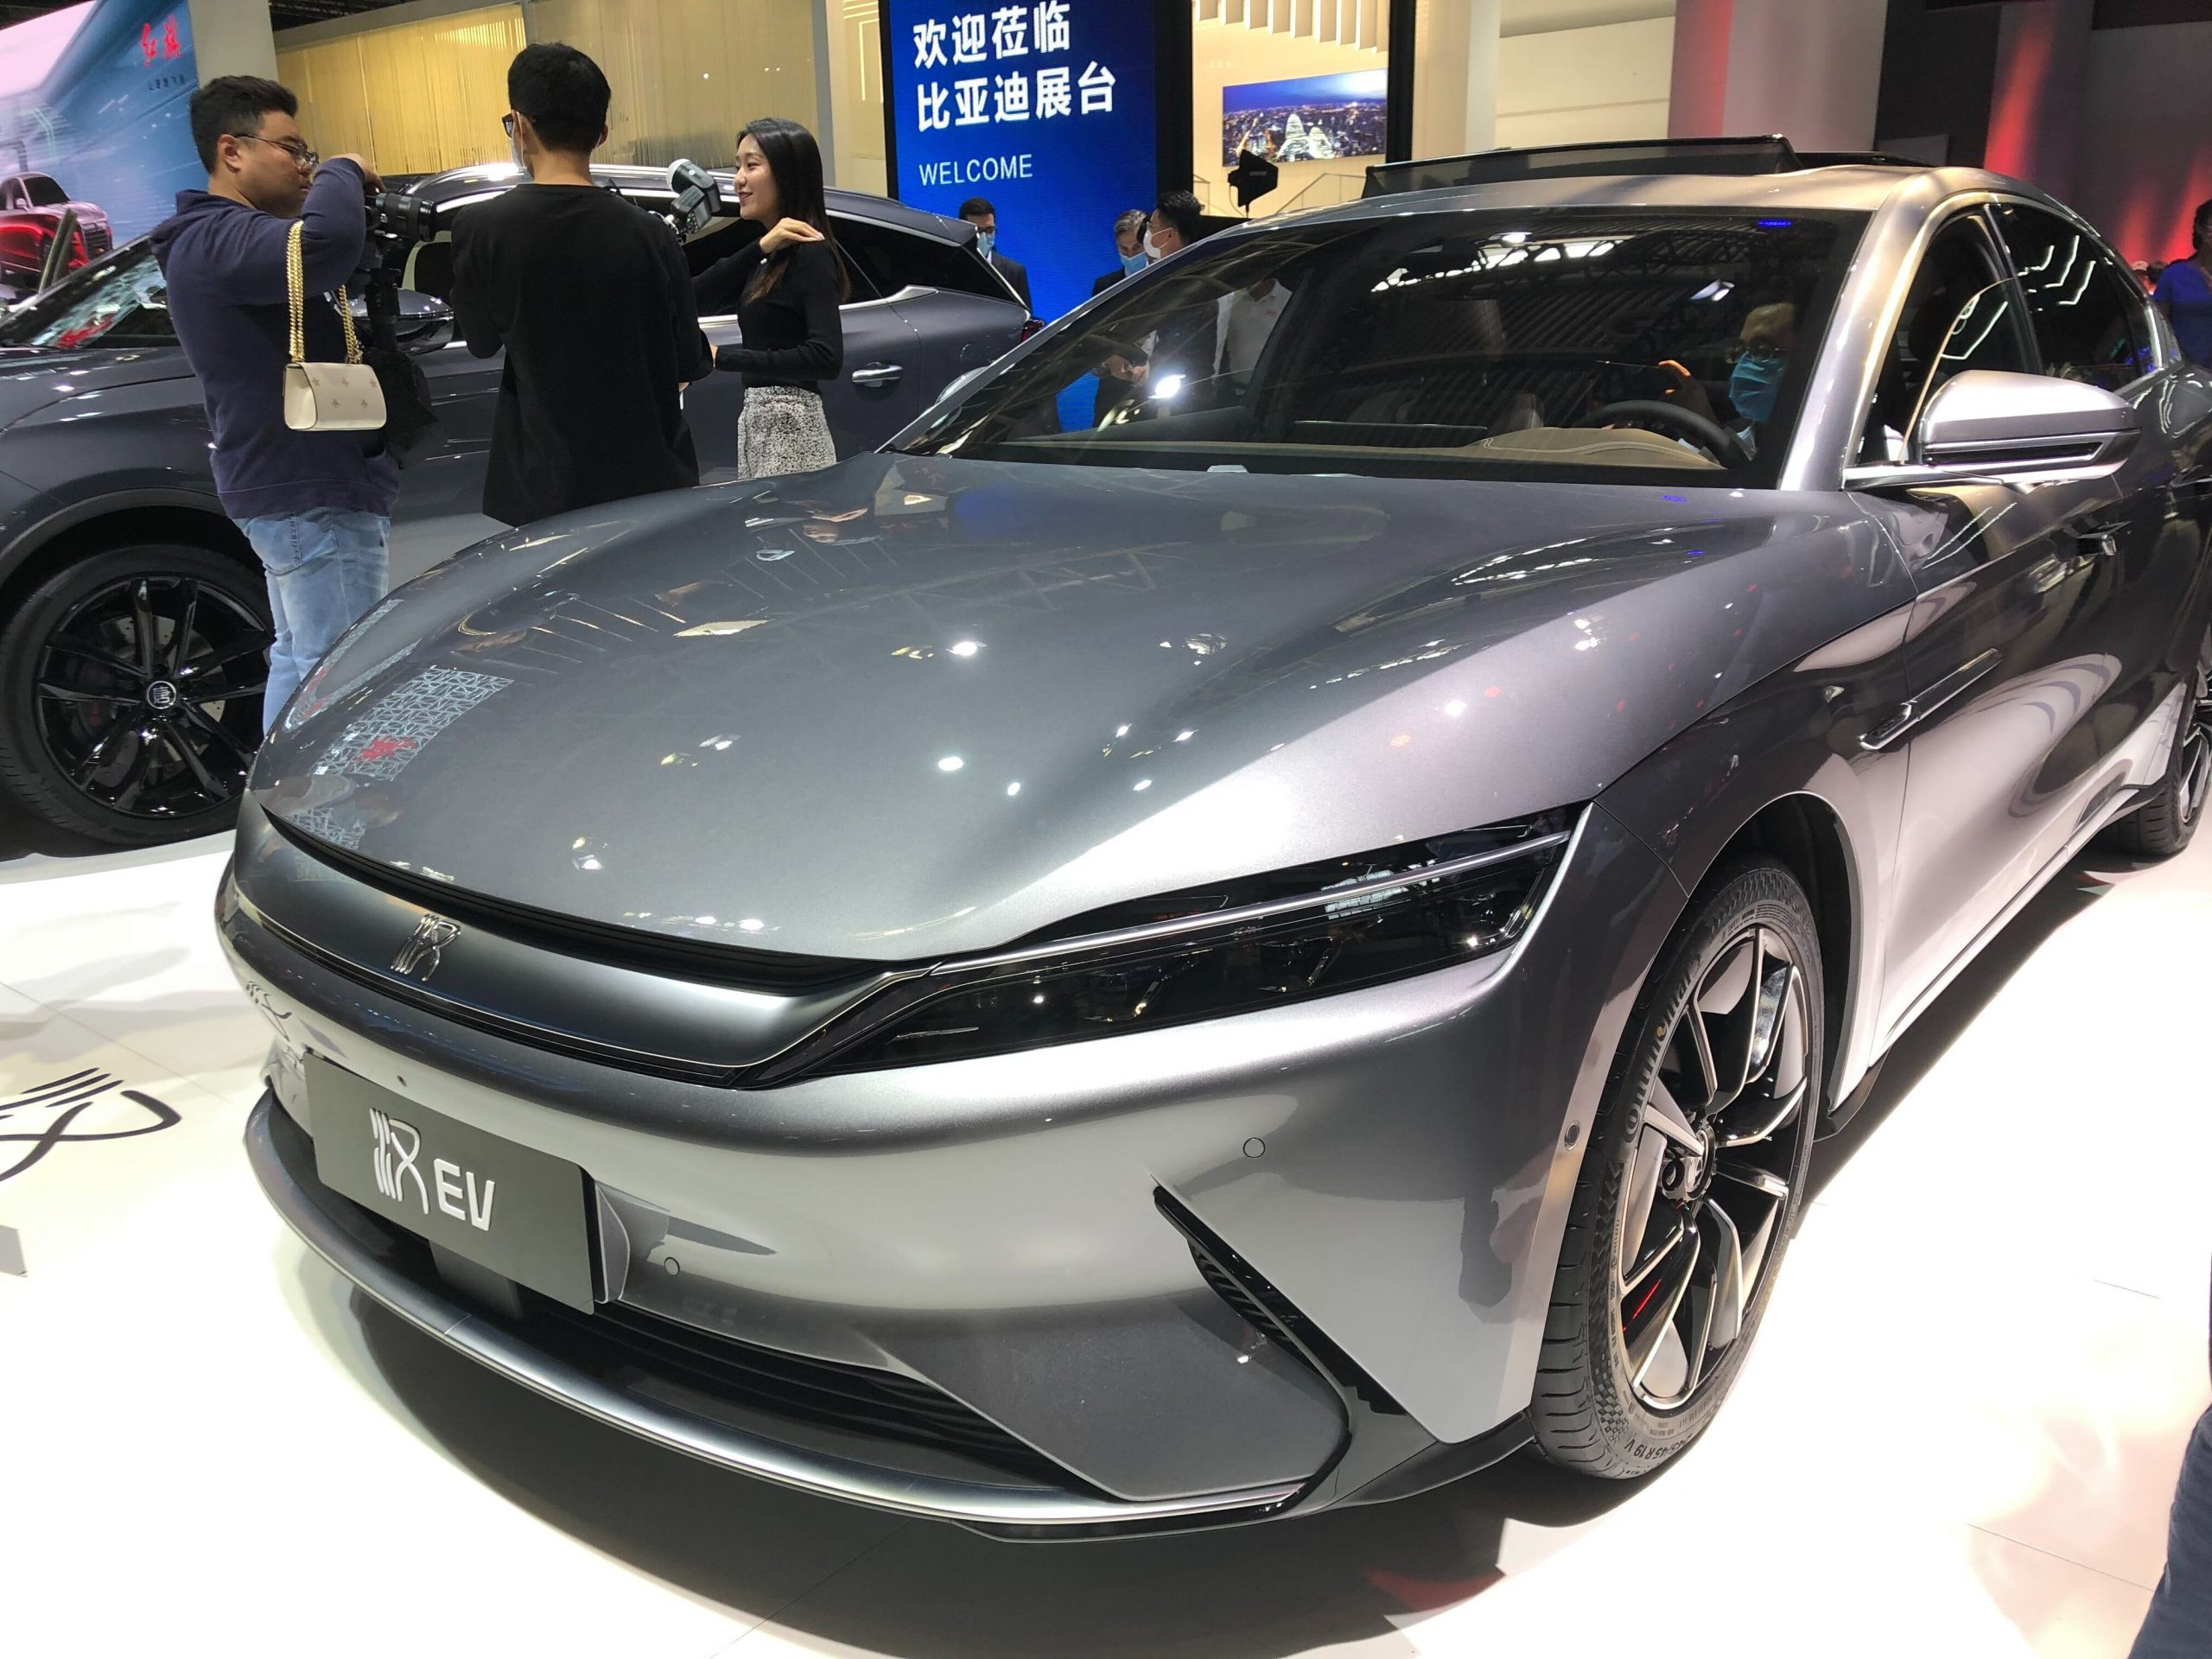 warren-buffett-backed-byd-sells-more-electric-cars-march-vs-nio-xpeng